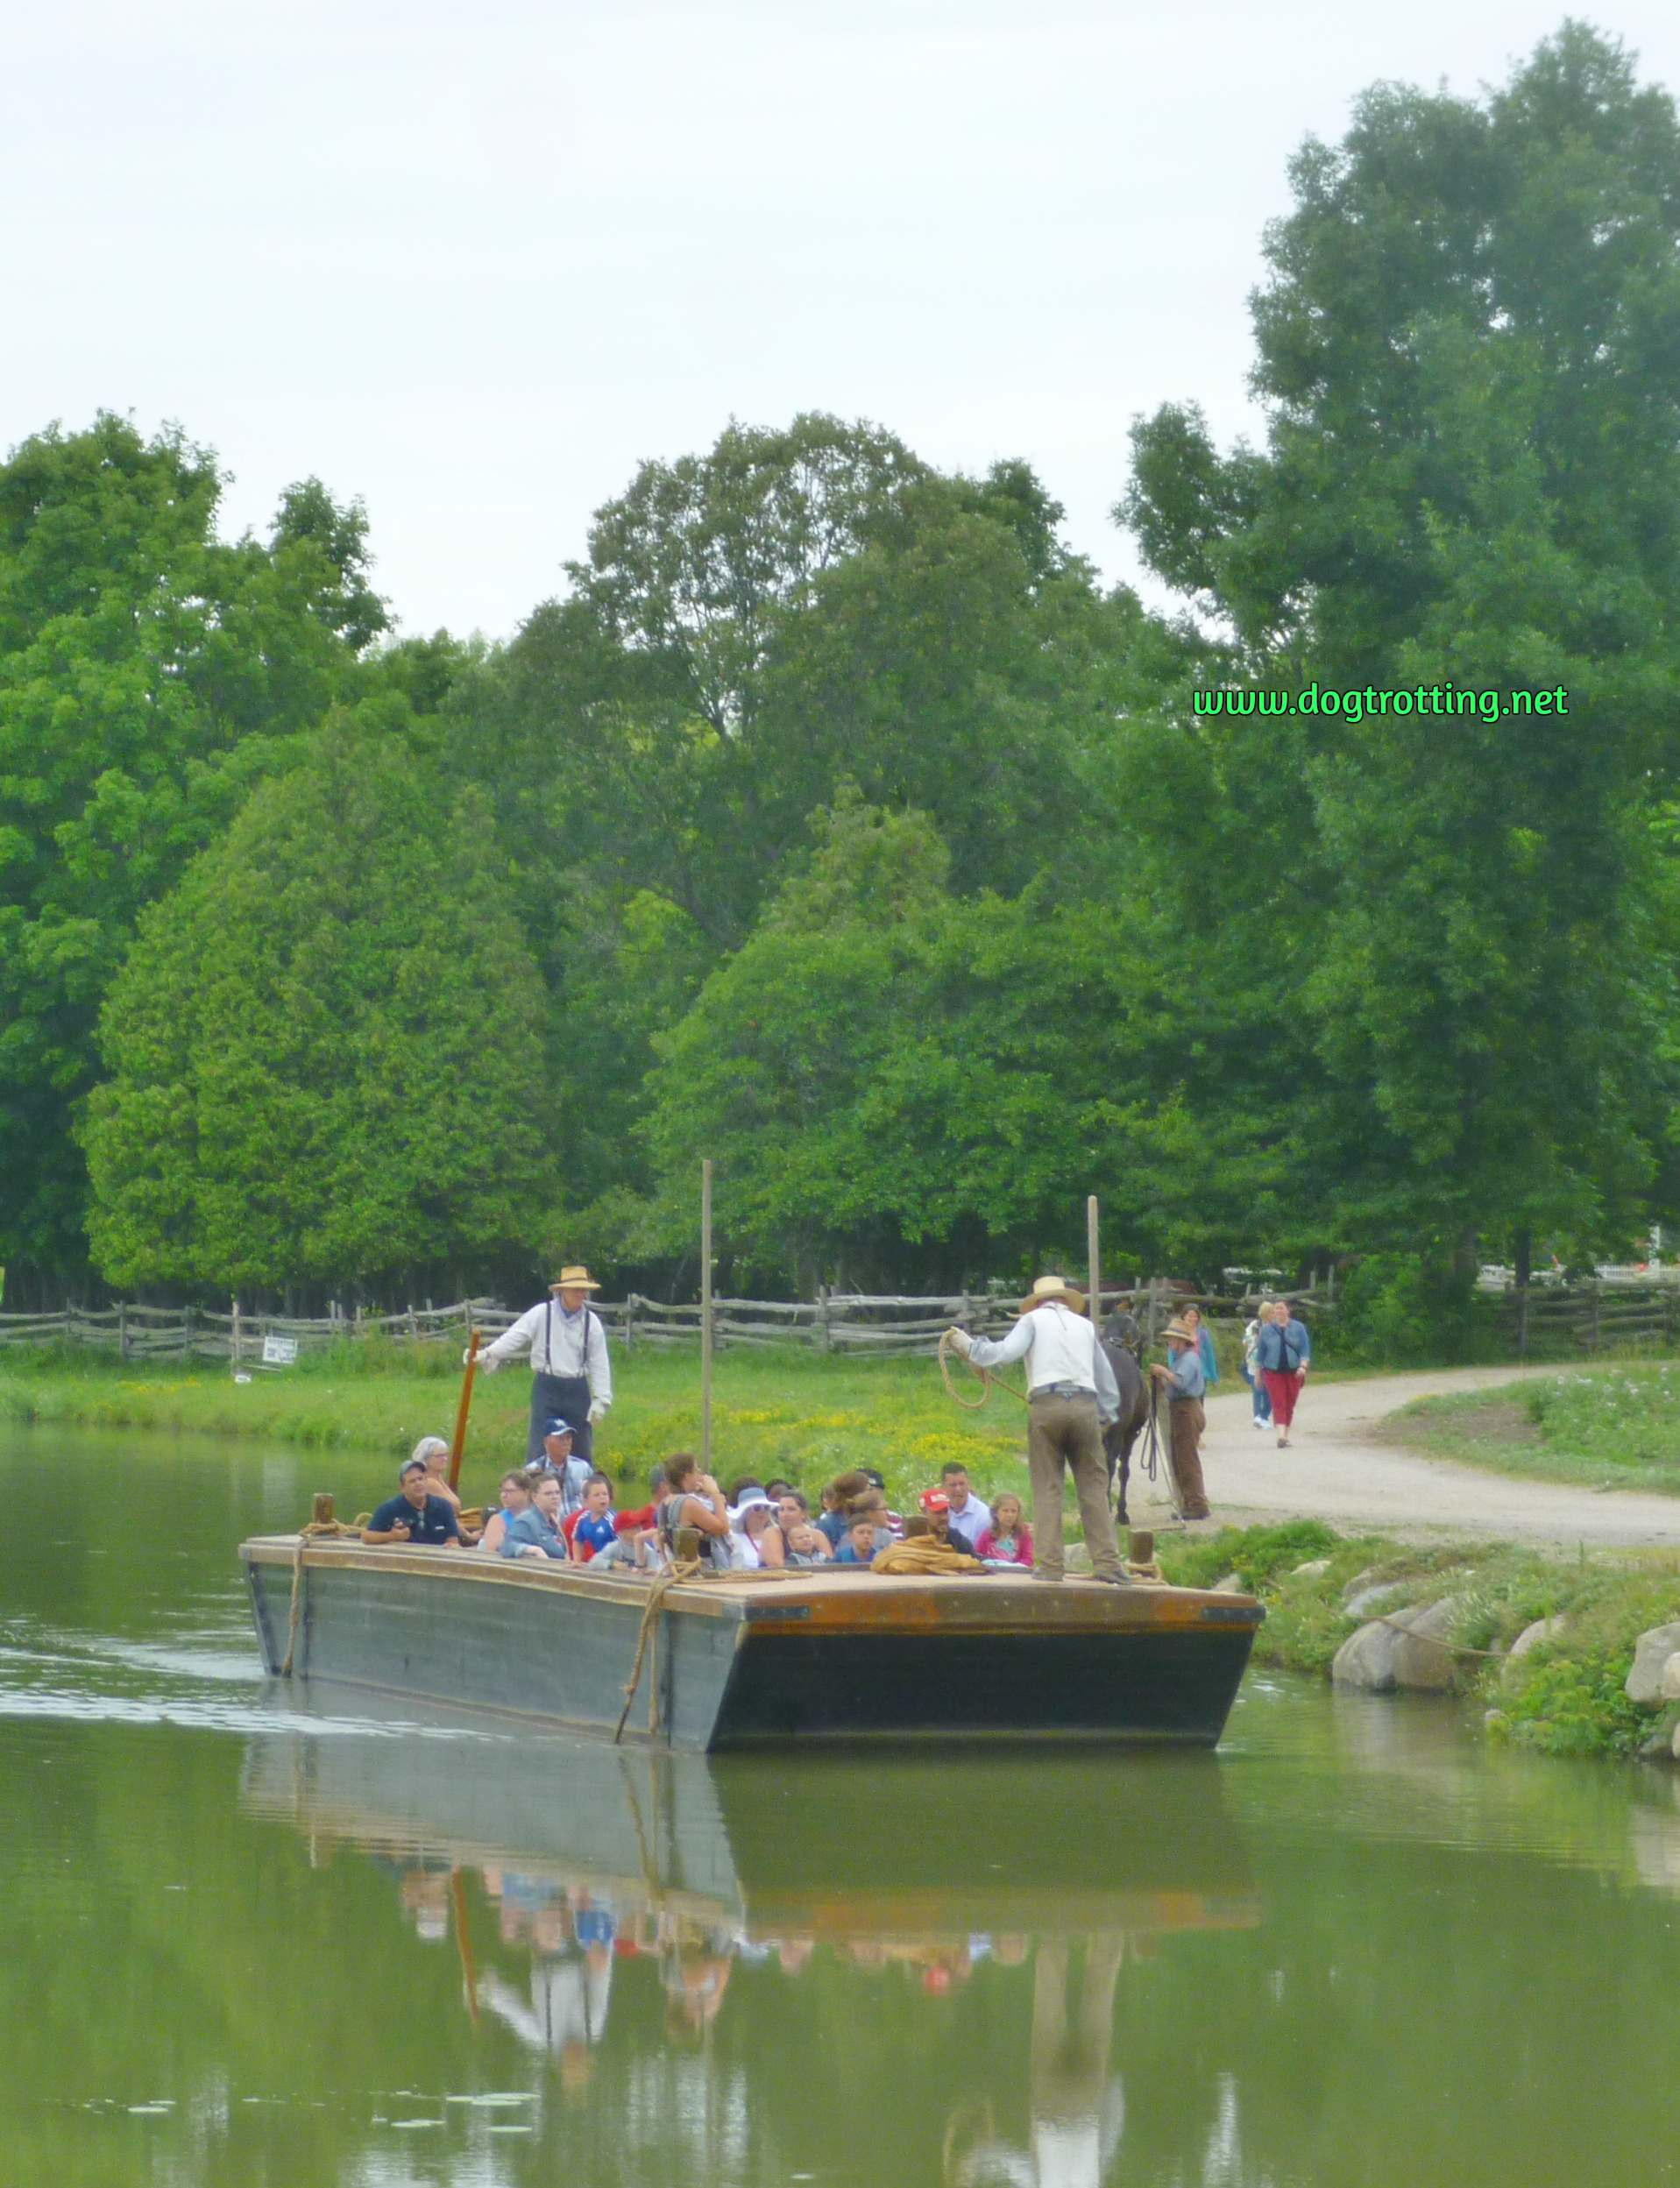 horse-drawn barge at dog-friendly Upper Canada Village